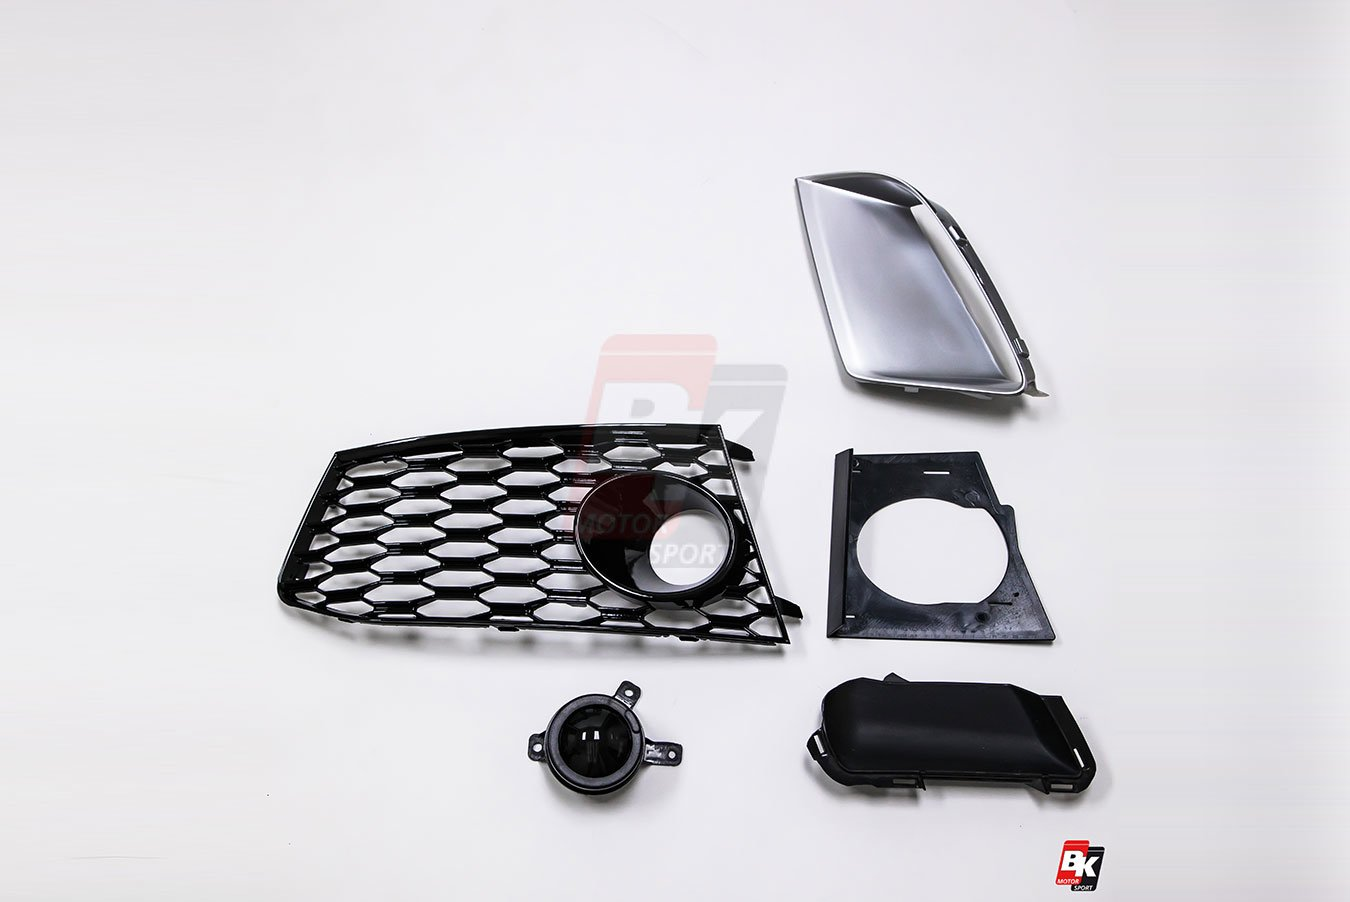 Black Audi A Rs Style on 2007 audi rs, audi tt coupe, audi a5 rs, audi s rs, audi q7 rs, audi quattro rs, 2005 audi rs, audi a7 rs, audi rs 10, audi rs6 avant usa, audi q5 rs, audi a8 rs, audi a4 wagon, 2001 audi rs, audi estate v1.0, audi tt rs, audi r8 rs, audi rs v10, audi a3 rs, audi rs 5 coupe,